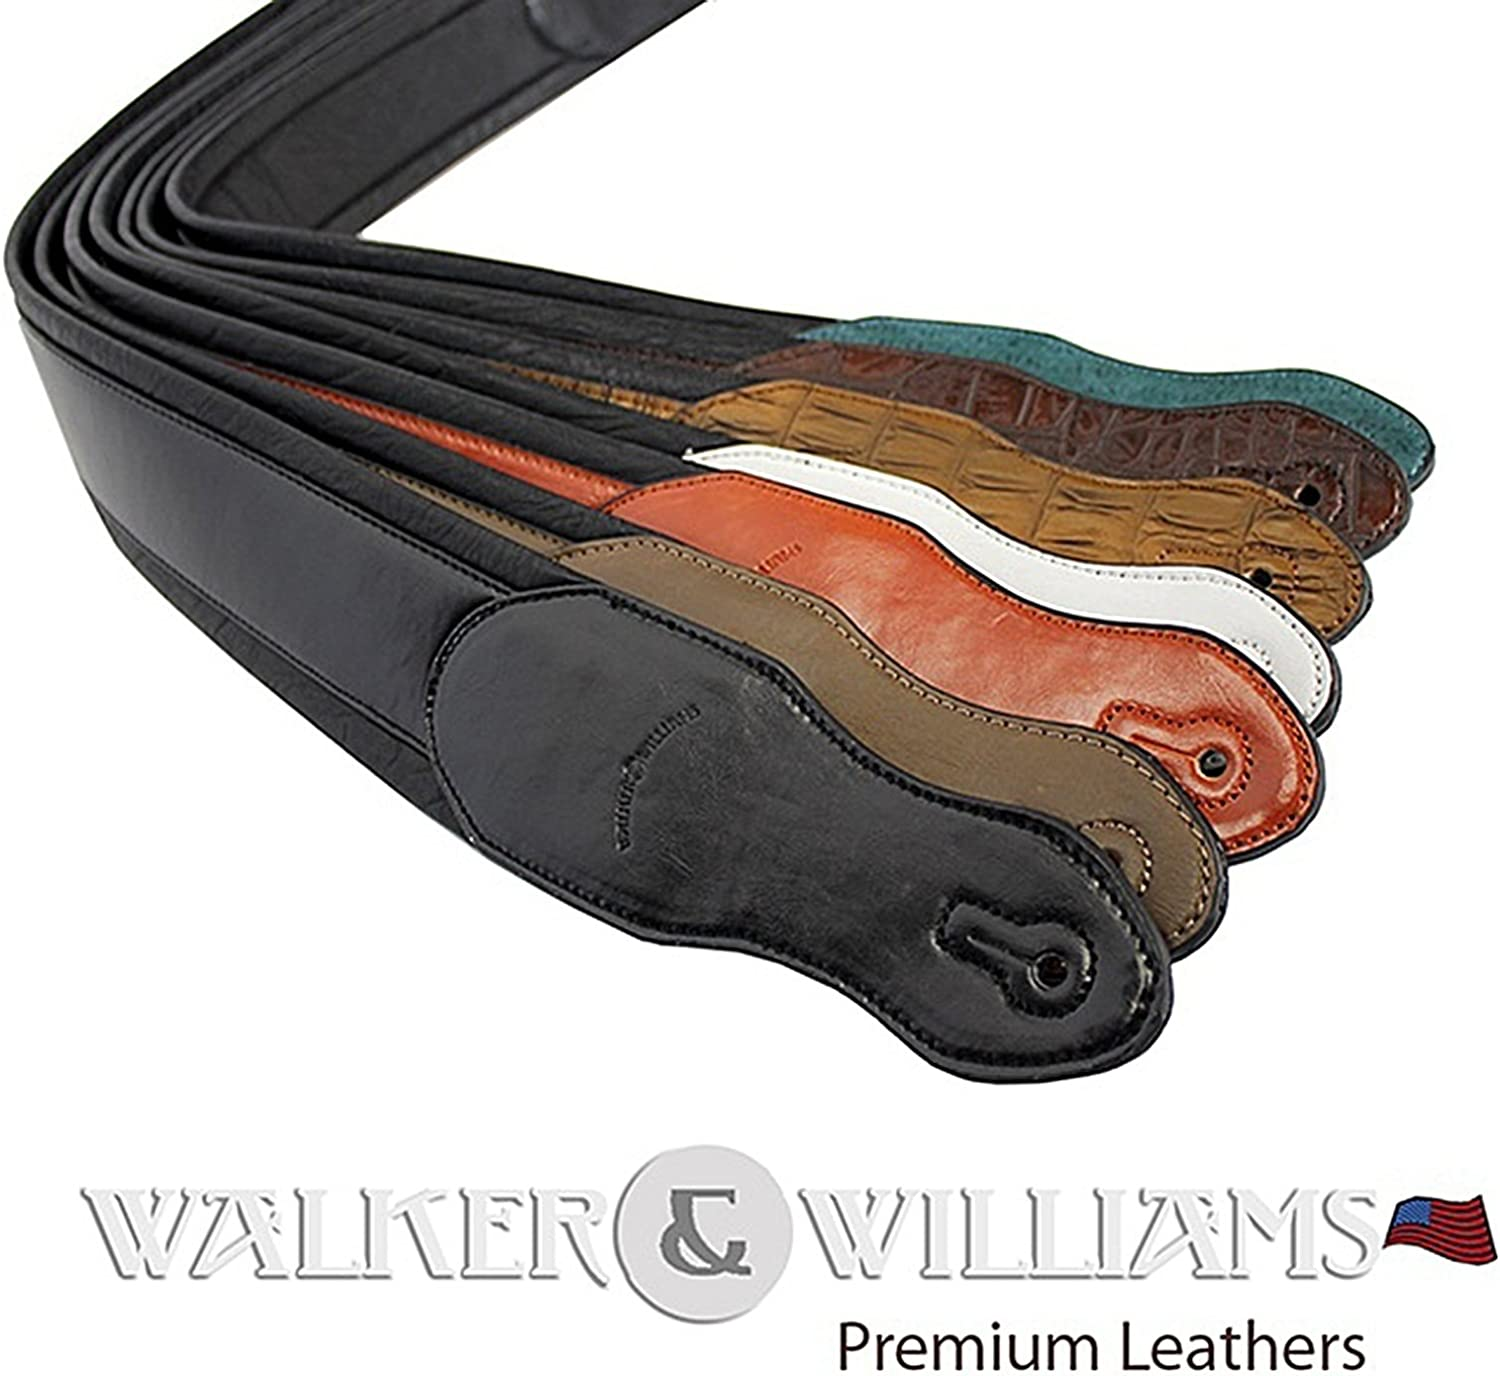 Walker /& Williams Black /& White Top Grain Leather Guitar Strap with Chrome and Brass Metal Studs